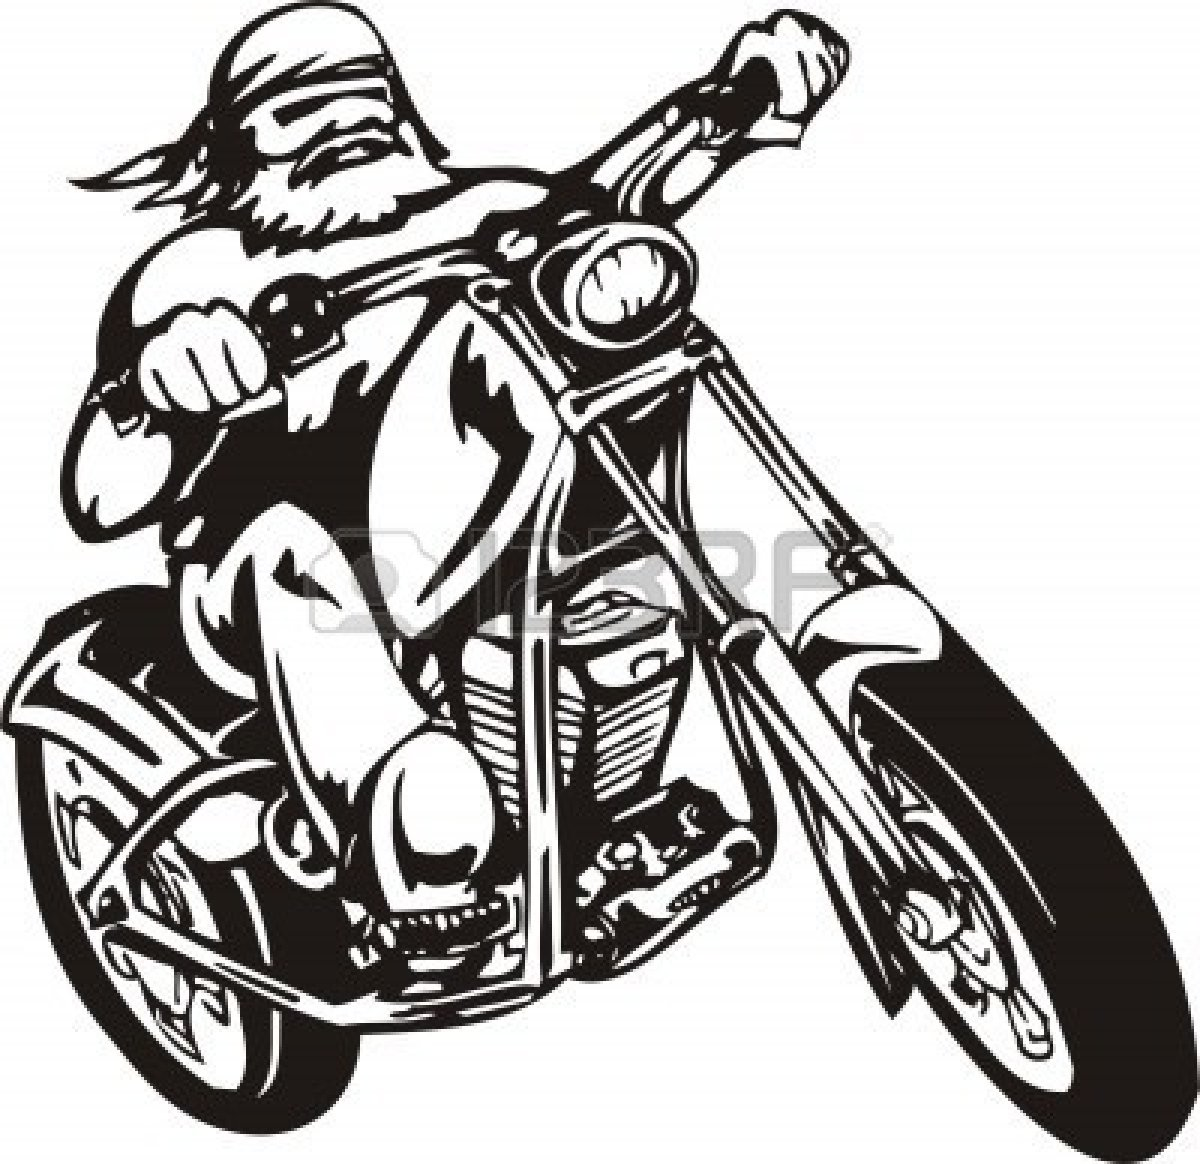 13 Motorcycle Rider Vector Images - Motorcycle Rider ...